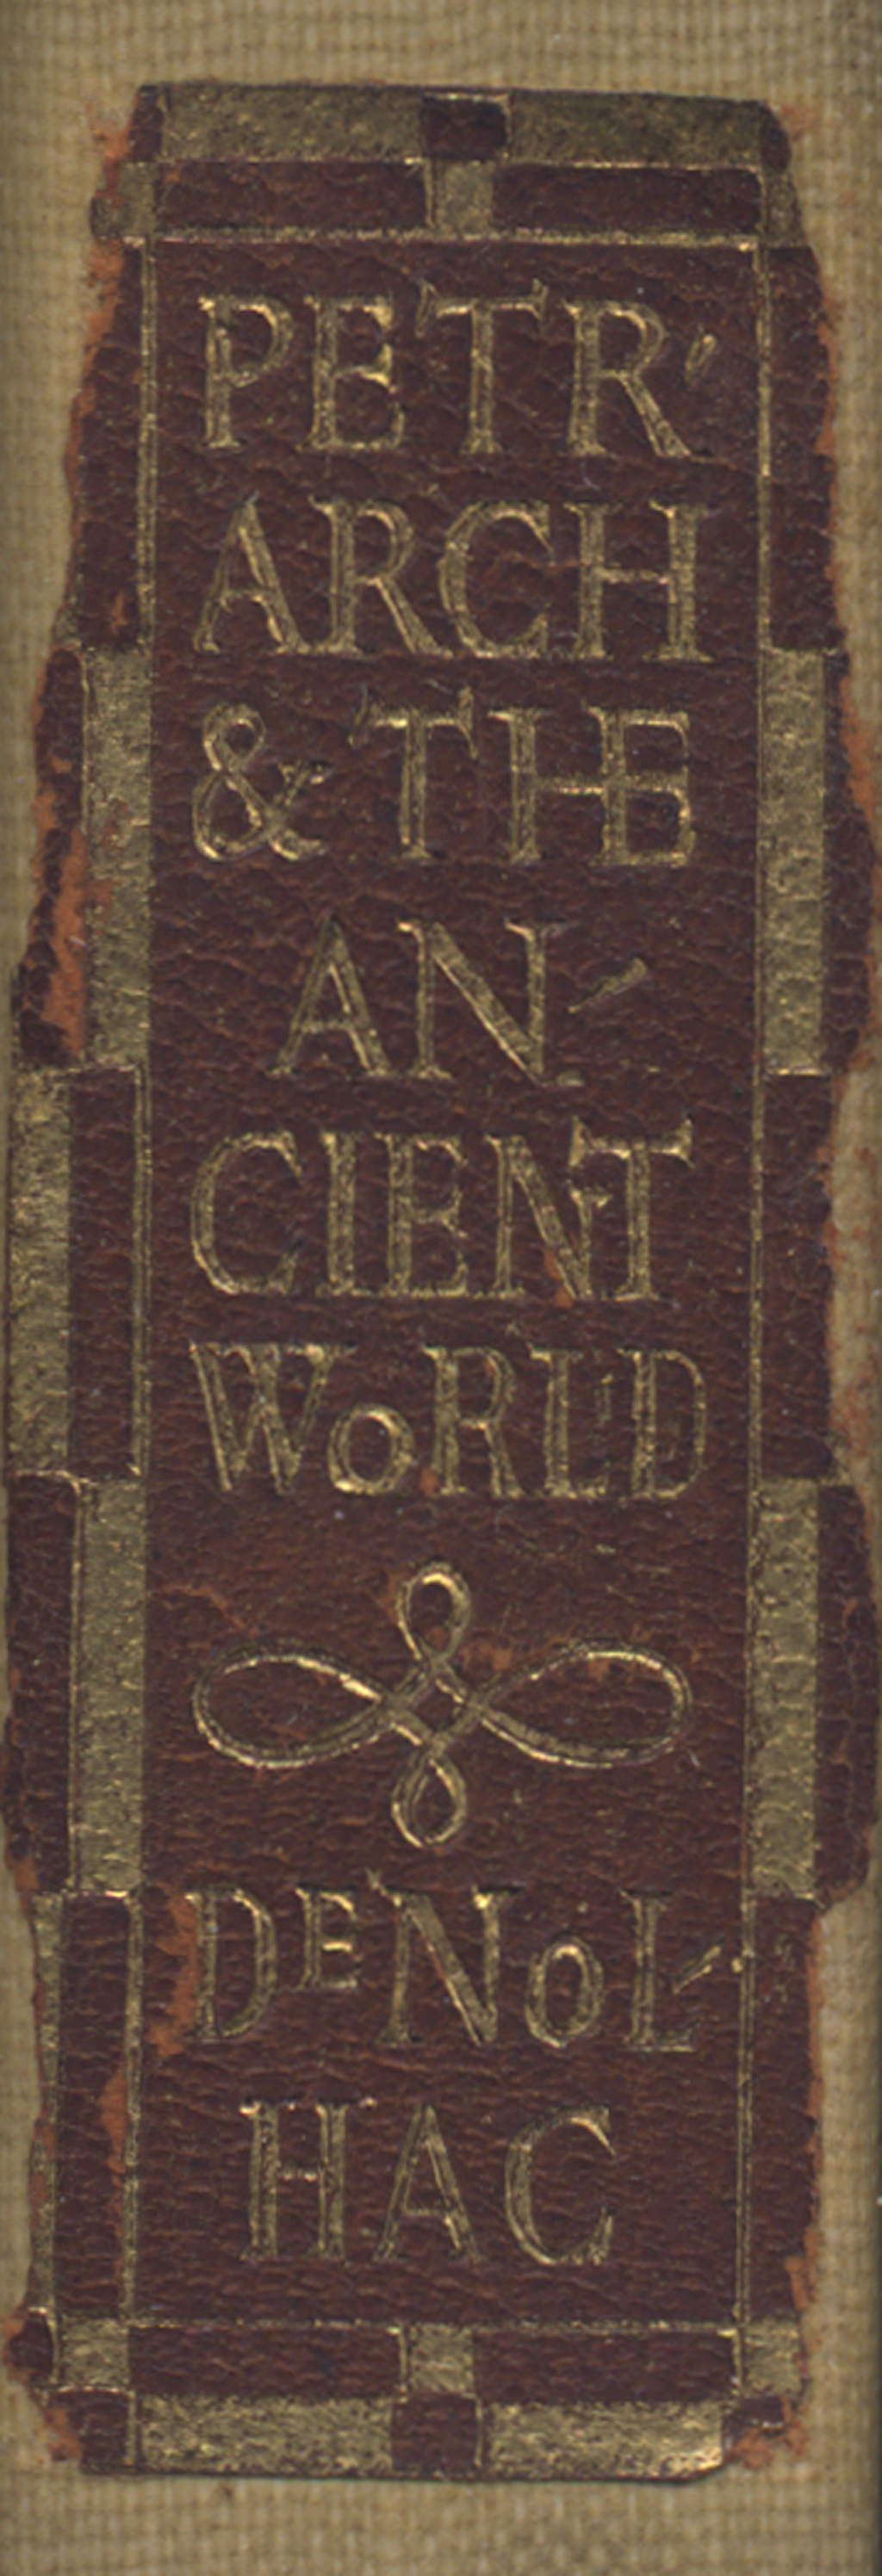 Label on spine of Petrarch and the Ancient World by Pierre de Nolhac (Boston: The Merrymount Press, 1907). Lettering by W.A. Dwiggins.